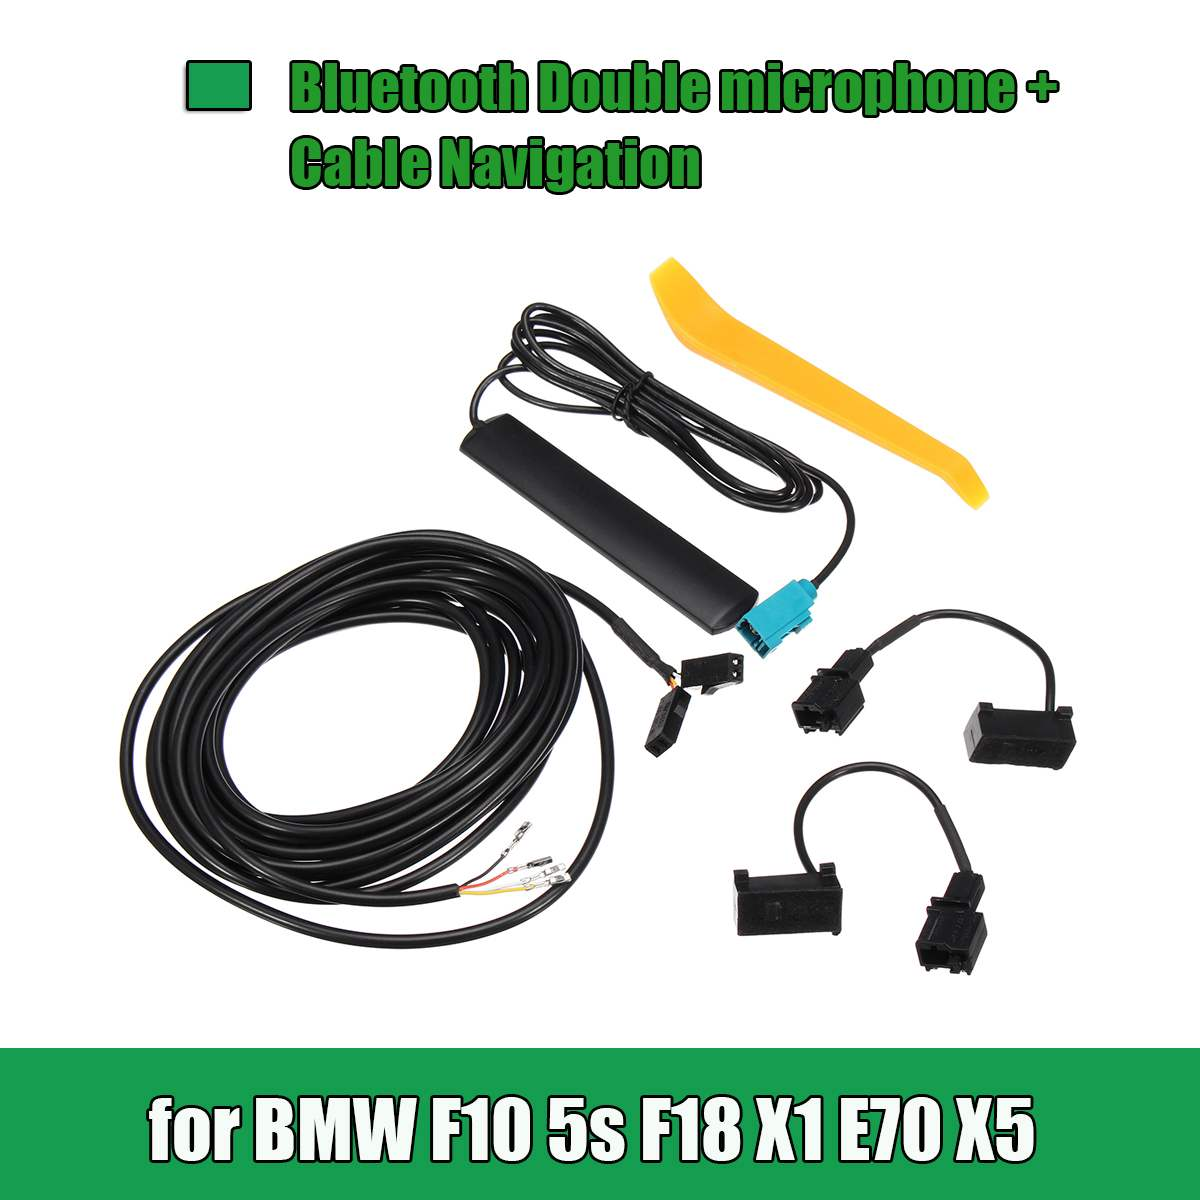 For <font><b>BMW</b></font> F10 5S F18 X1 <font><b>E70</b></font> <font><b>X5</b></font> Car <font><b>bluetooth</b></font> Double Microphone 12/13/25/26 Pin Aux Cable Adapter Car GPS Navigation Cable DIY Set image